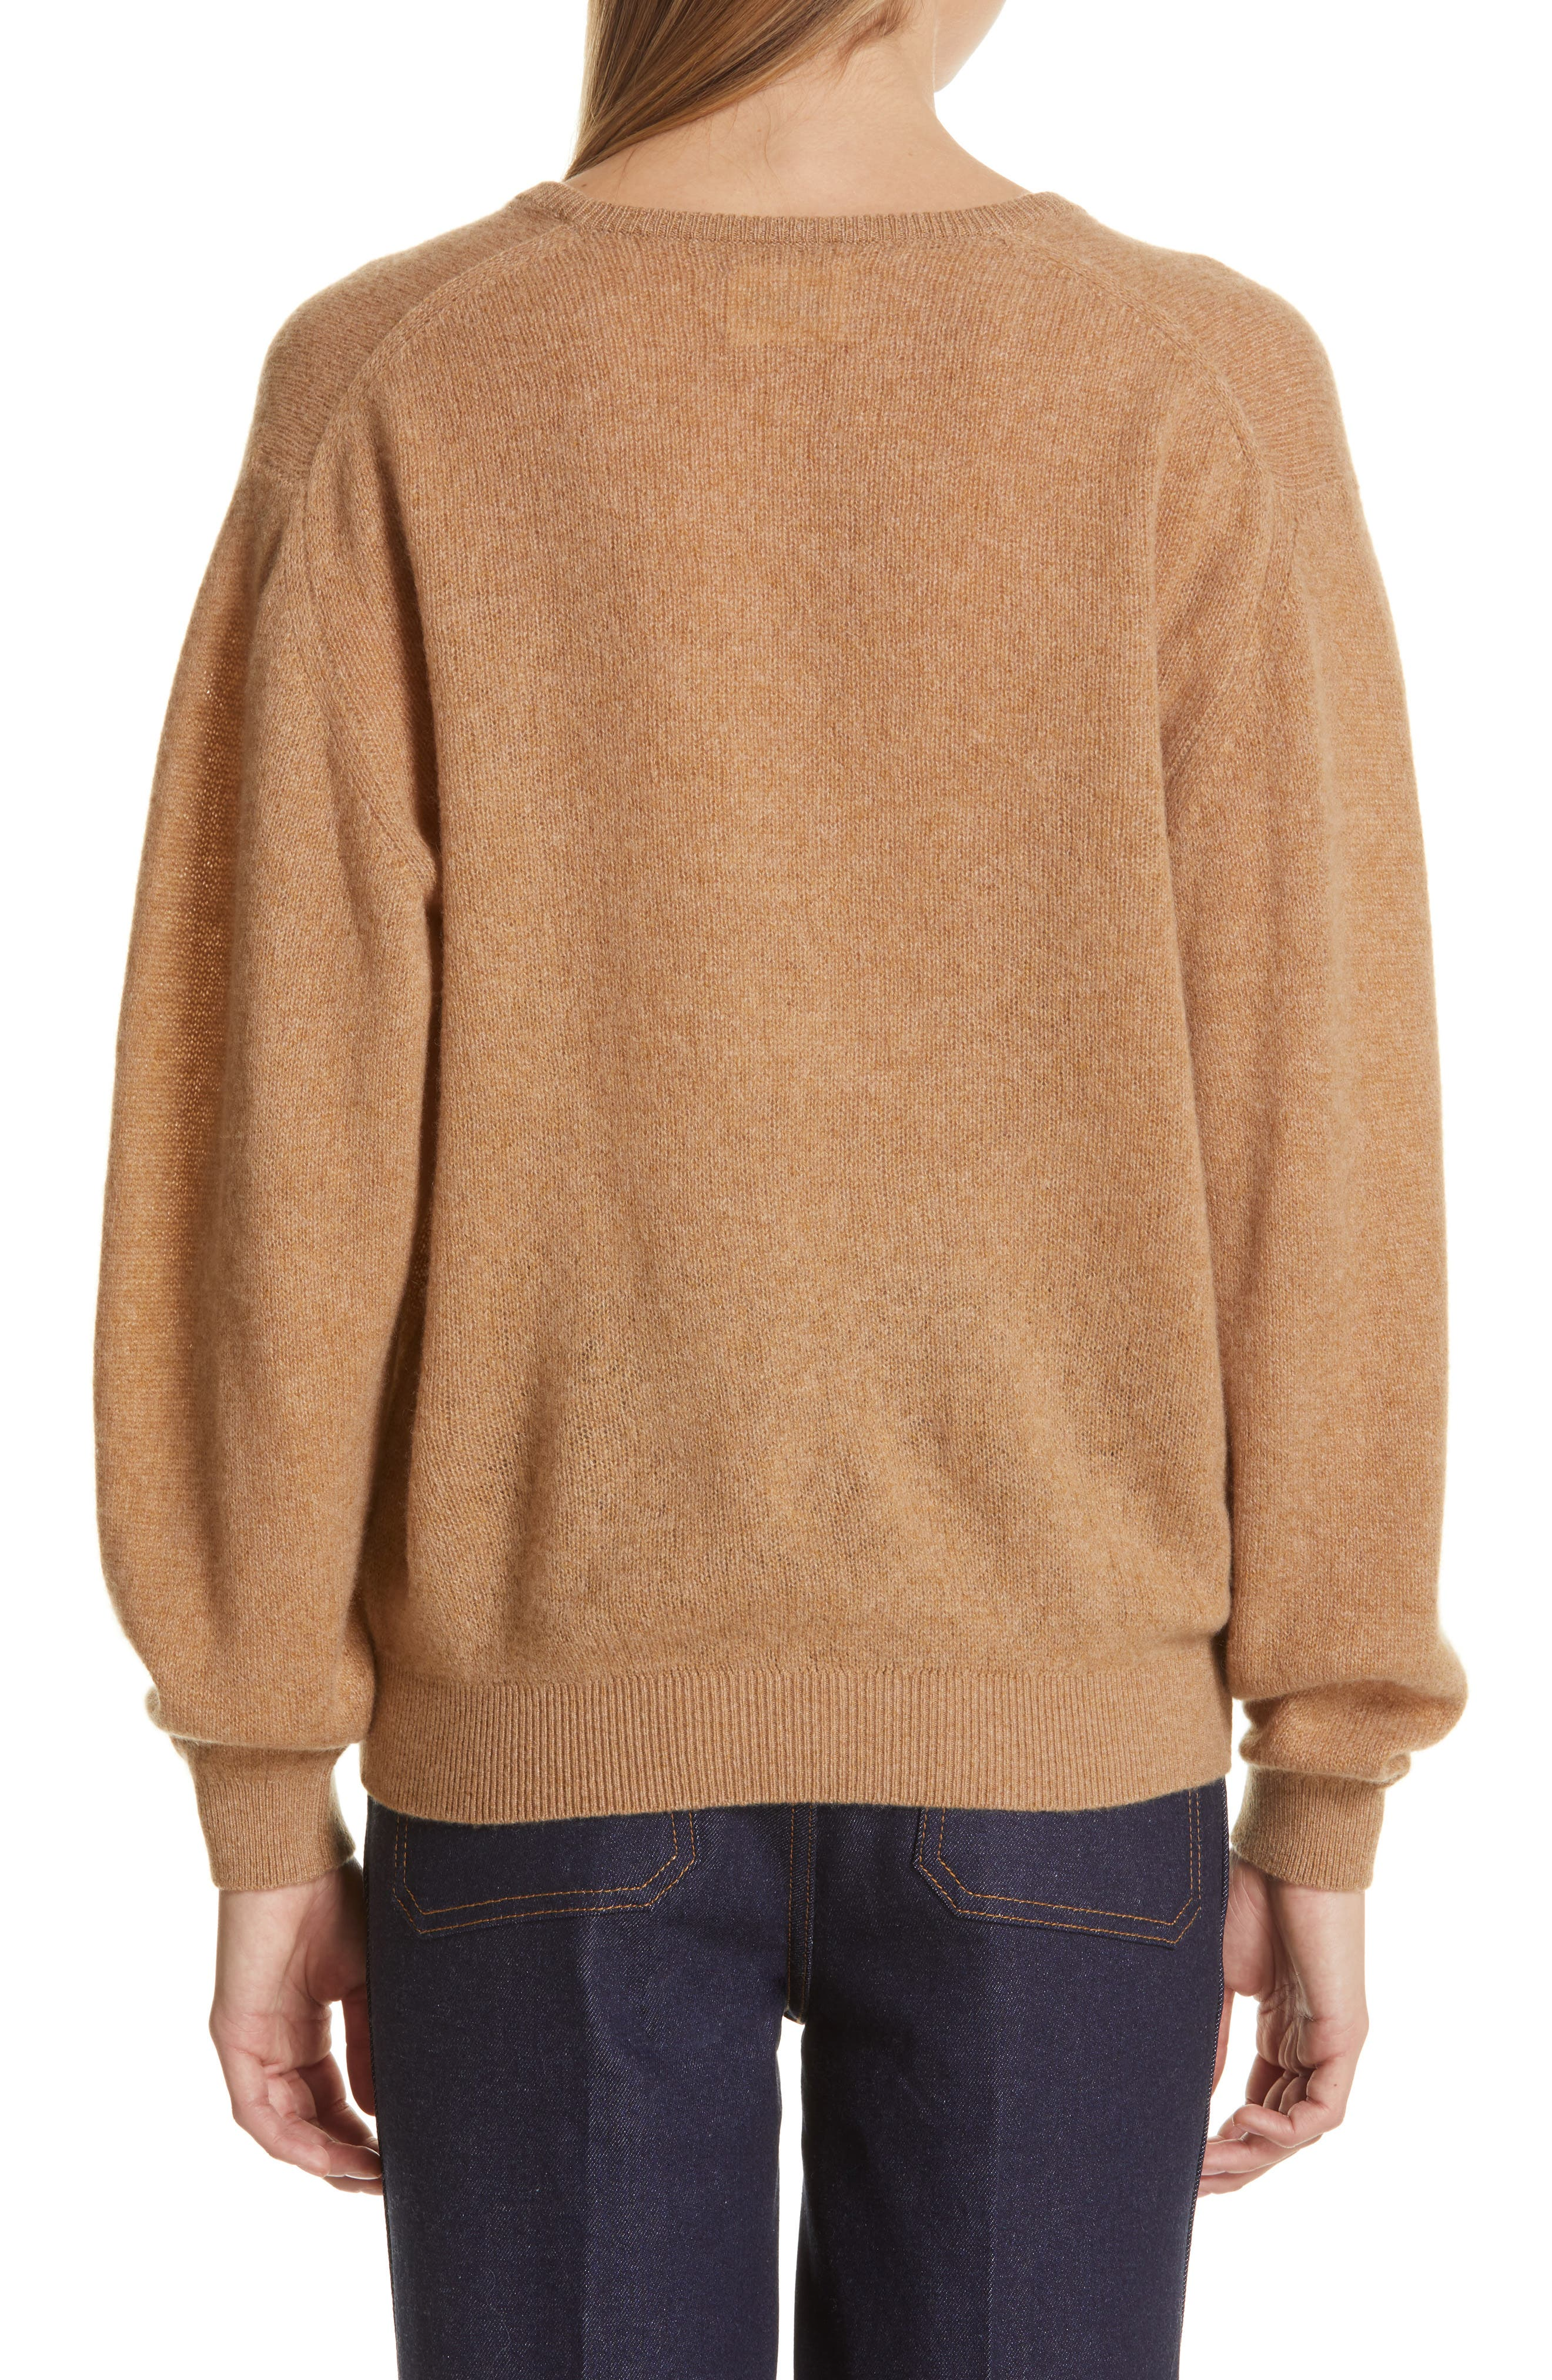 KHAITE,                             Sam Cashmere Sweater,                             Alternate thumbnail 2, color,                             CAMEL